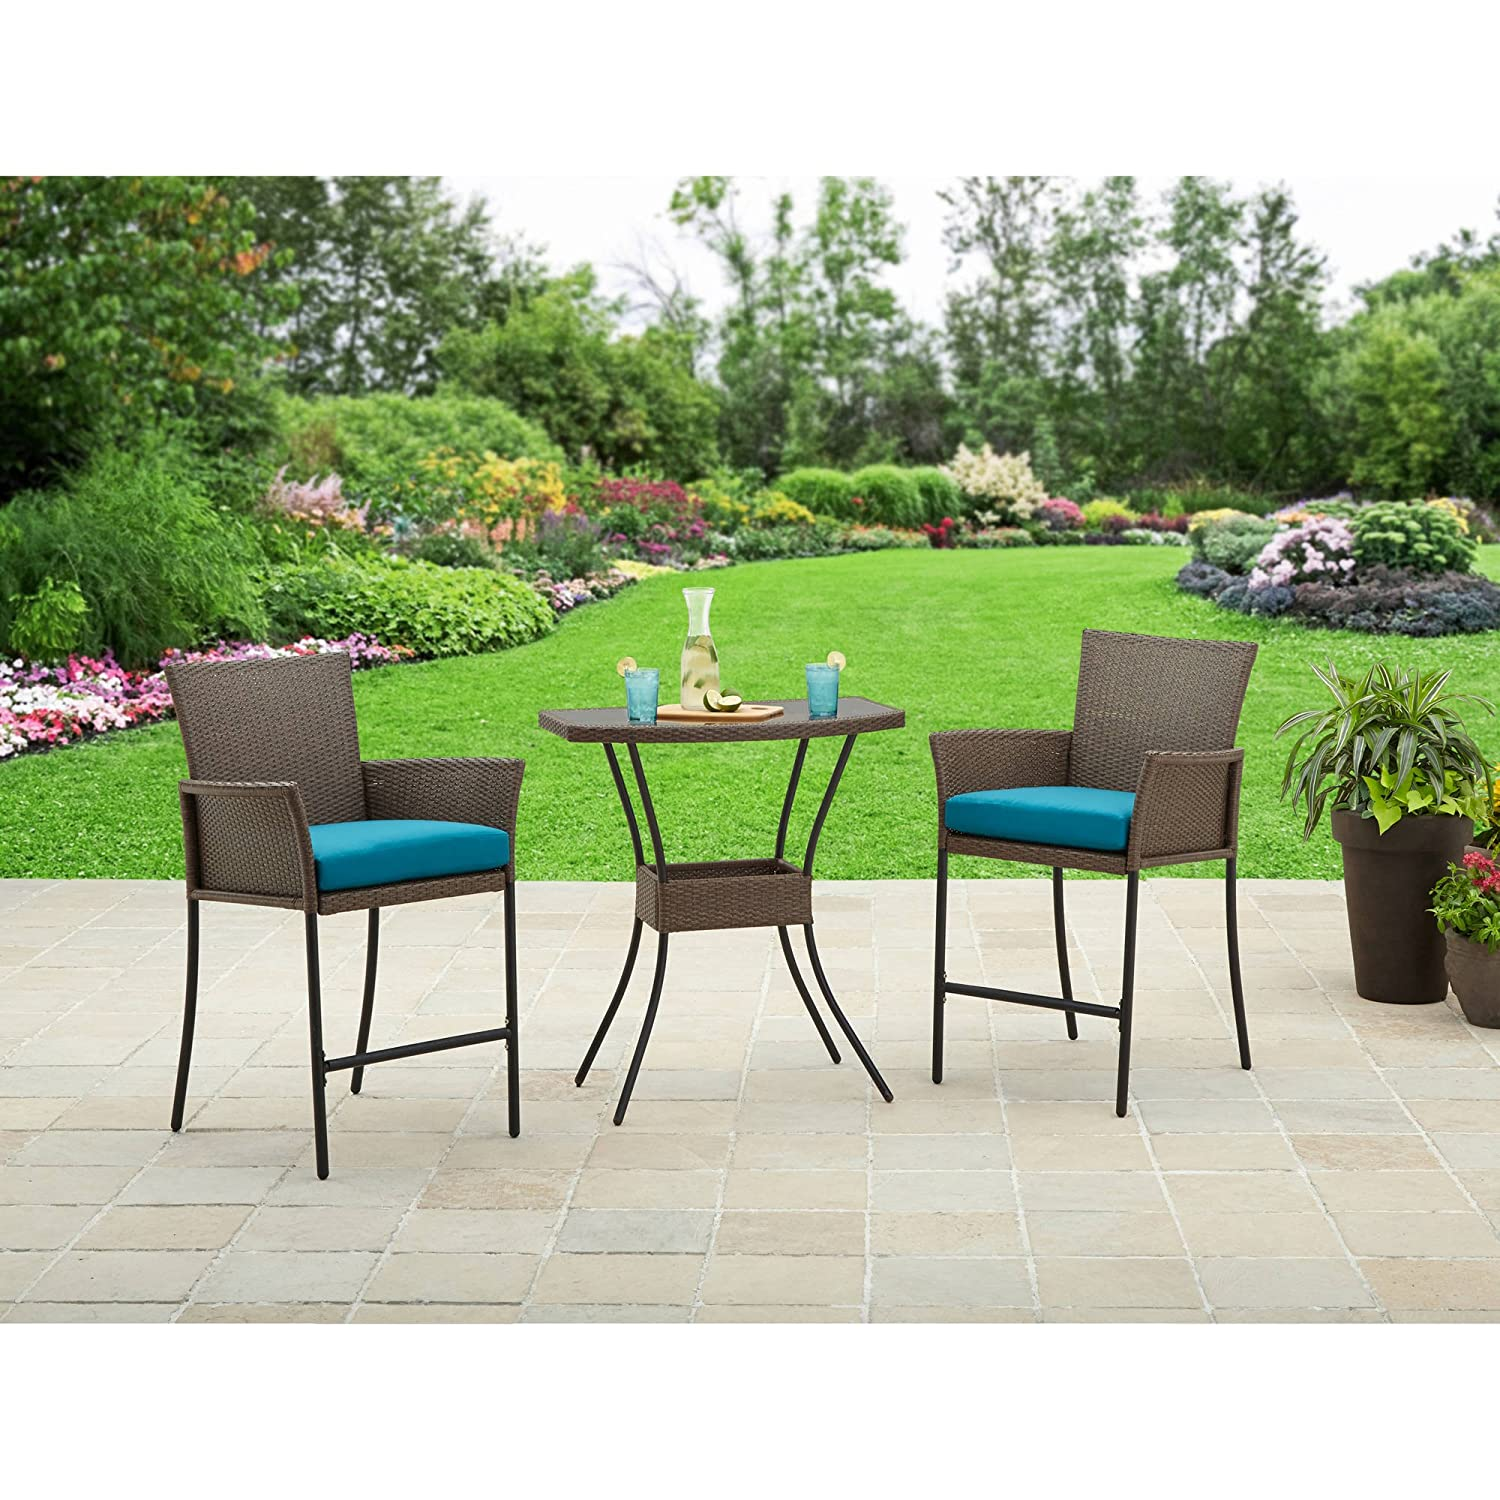 Amazon Better Homes and Gardens Patio Furniture Fairfield Bay